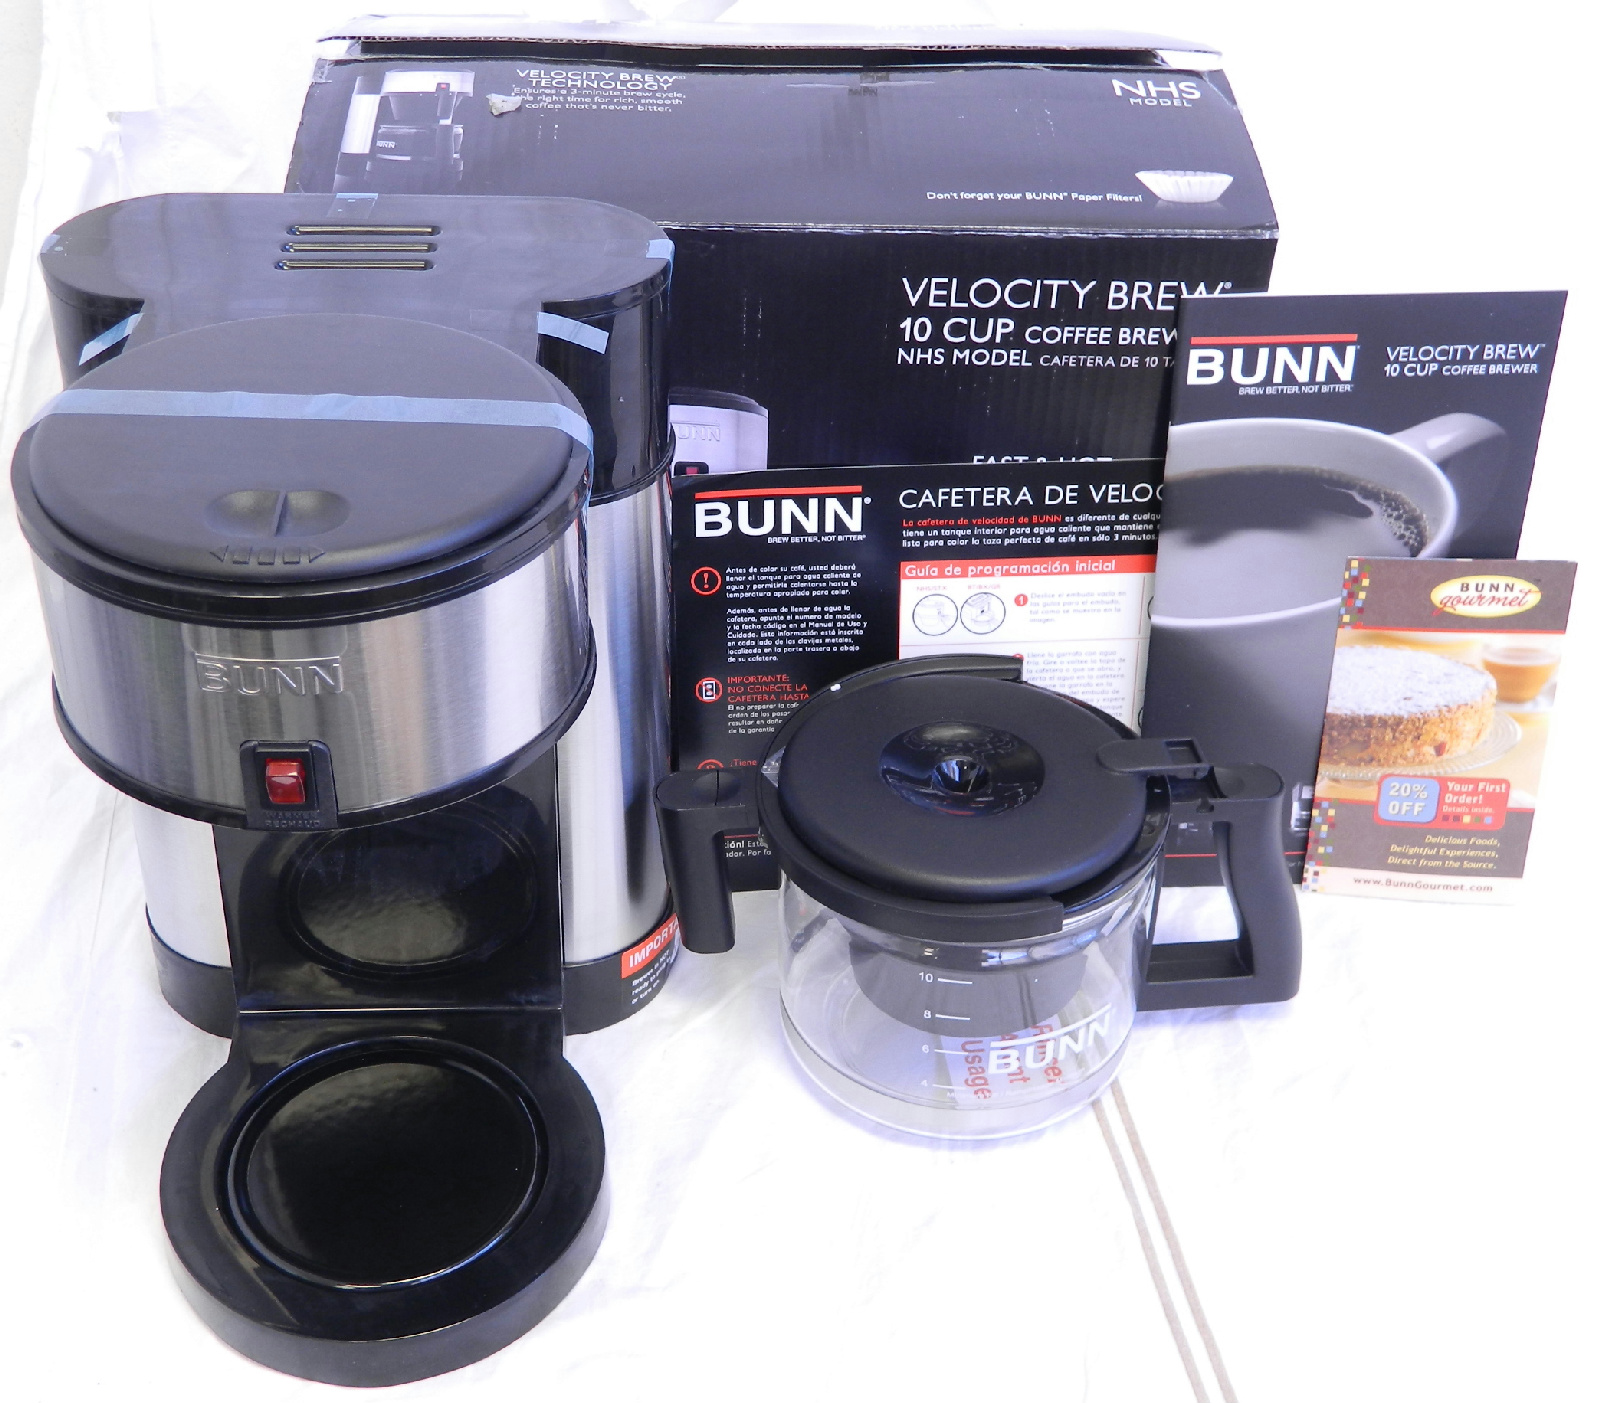 Bunn Coffee Maker Hot Plate Not Working : Bunn Velocity Brew 10 Cup Home Coffee Maker NHS-B Model eBay